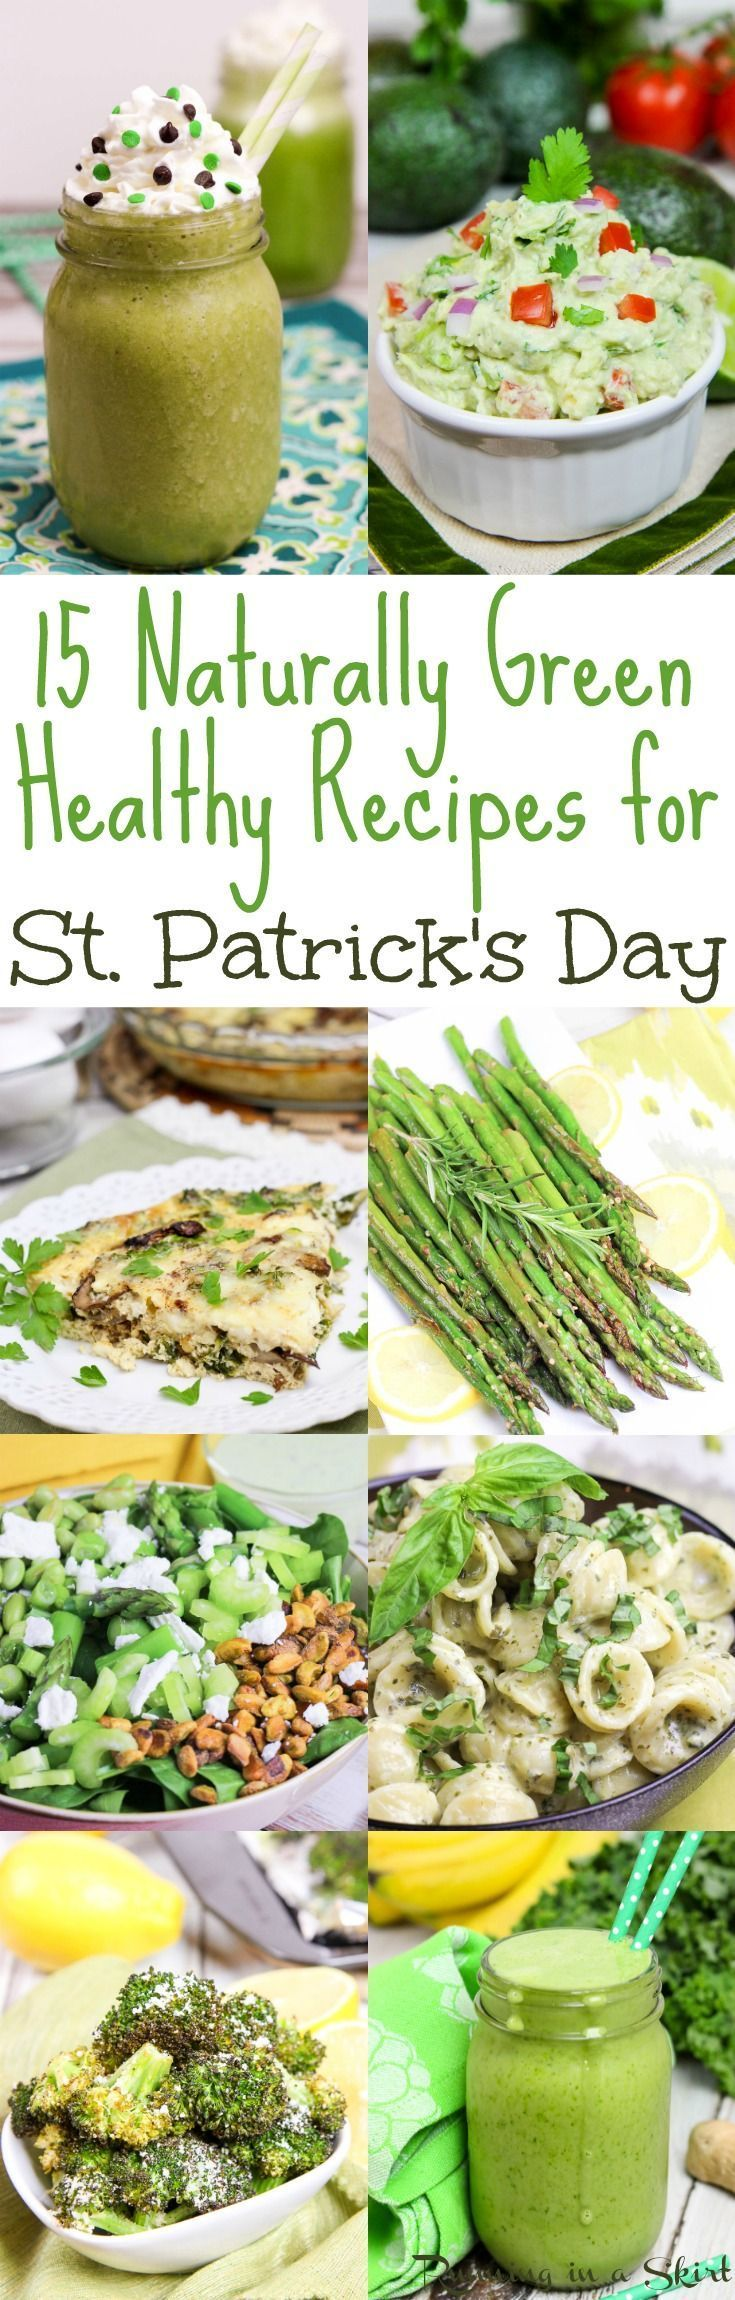 15 naturally green healthy st patricks day recipes 15 naturally green recipes for st patricks day these are easy st patricks forumfinder Images